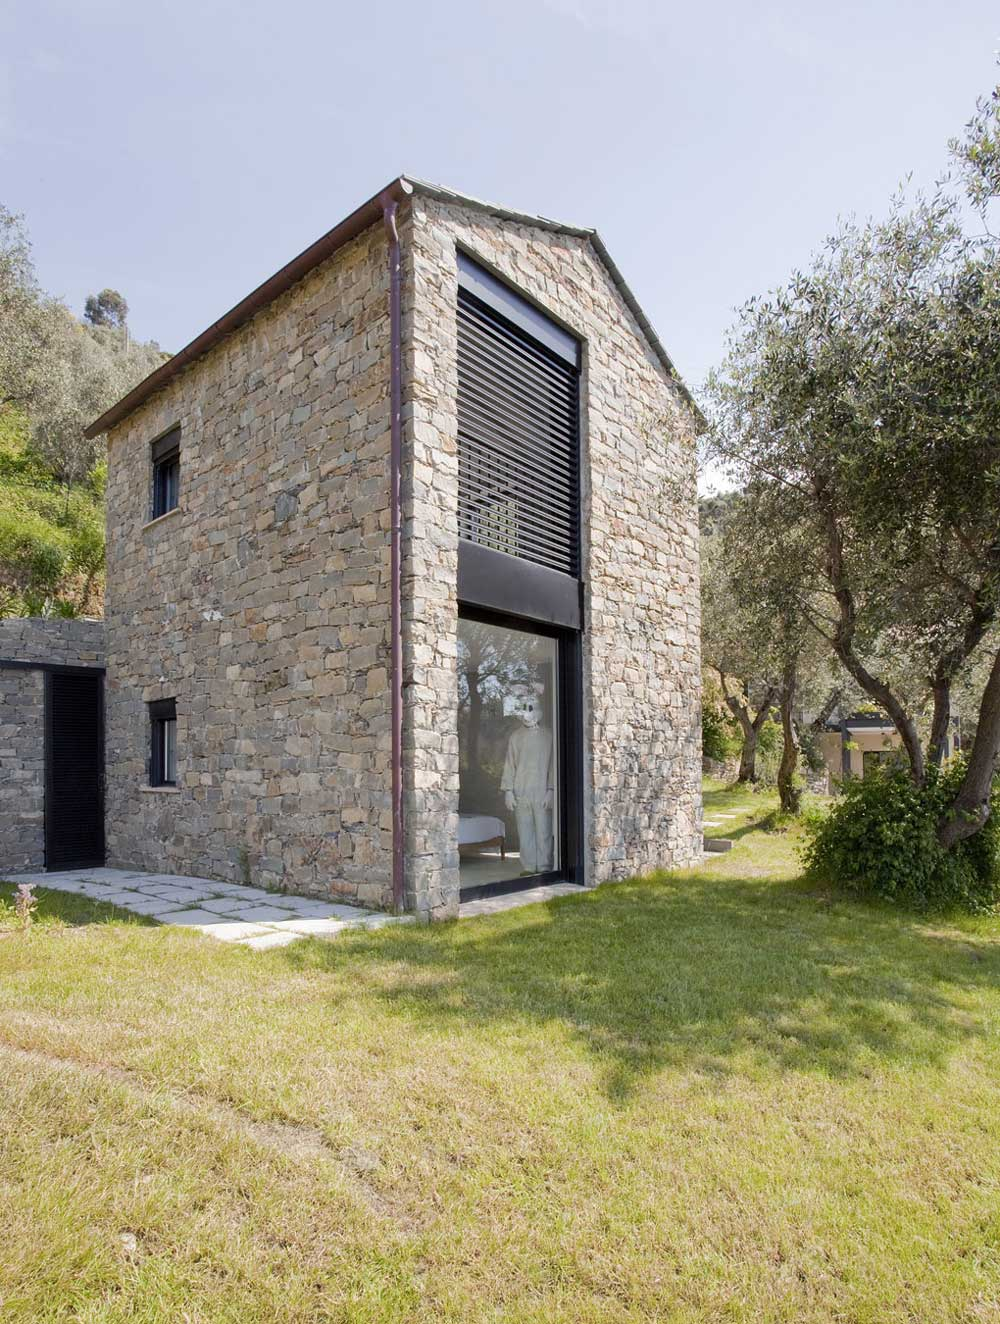 004 Farmhouse Italy A2bc Architects Ideasgn